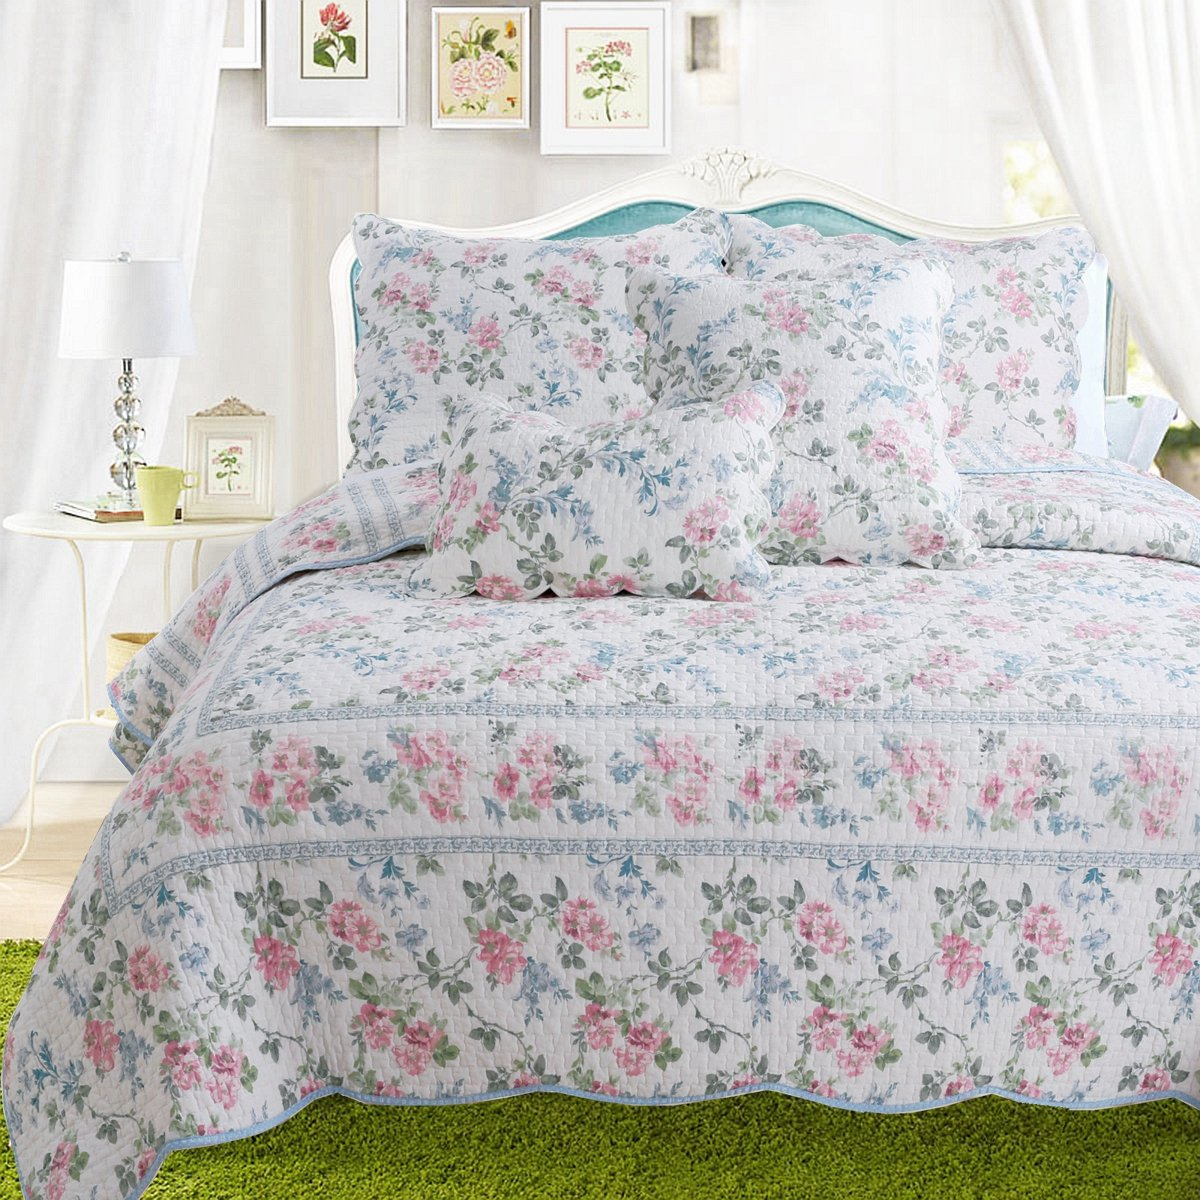 Cozy Line Home Fashions Dream of Narcissus Quilt Bedding Set, Romantic Flower Floral Pink Blue 100% Cotton Reversible Coverlet Bedspread Gifts for Women (Narcissus, King - 3 Piece)